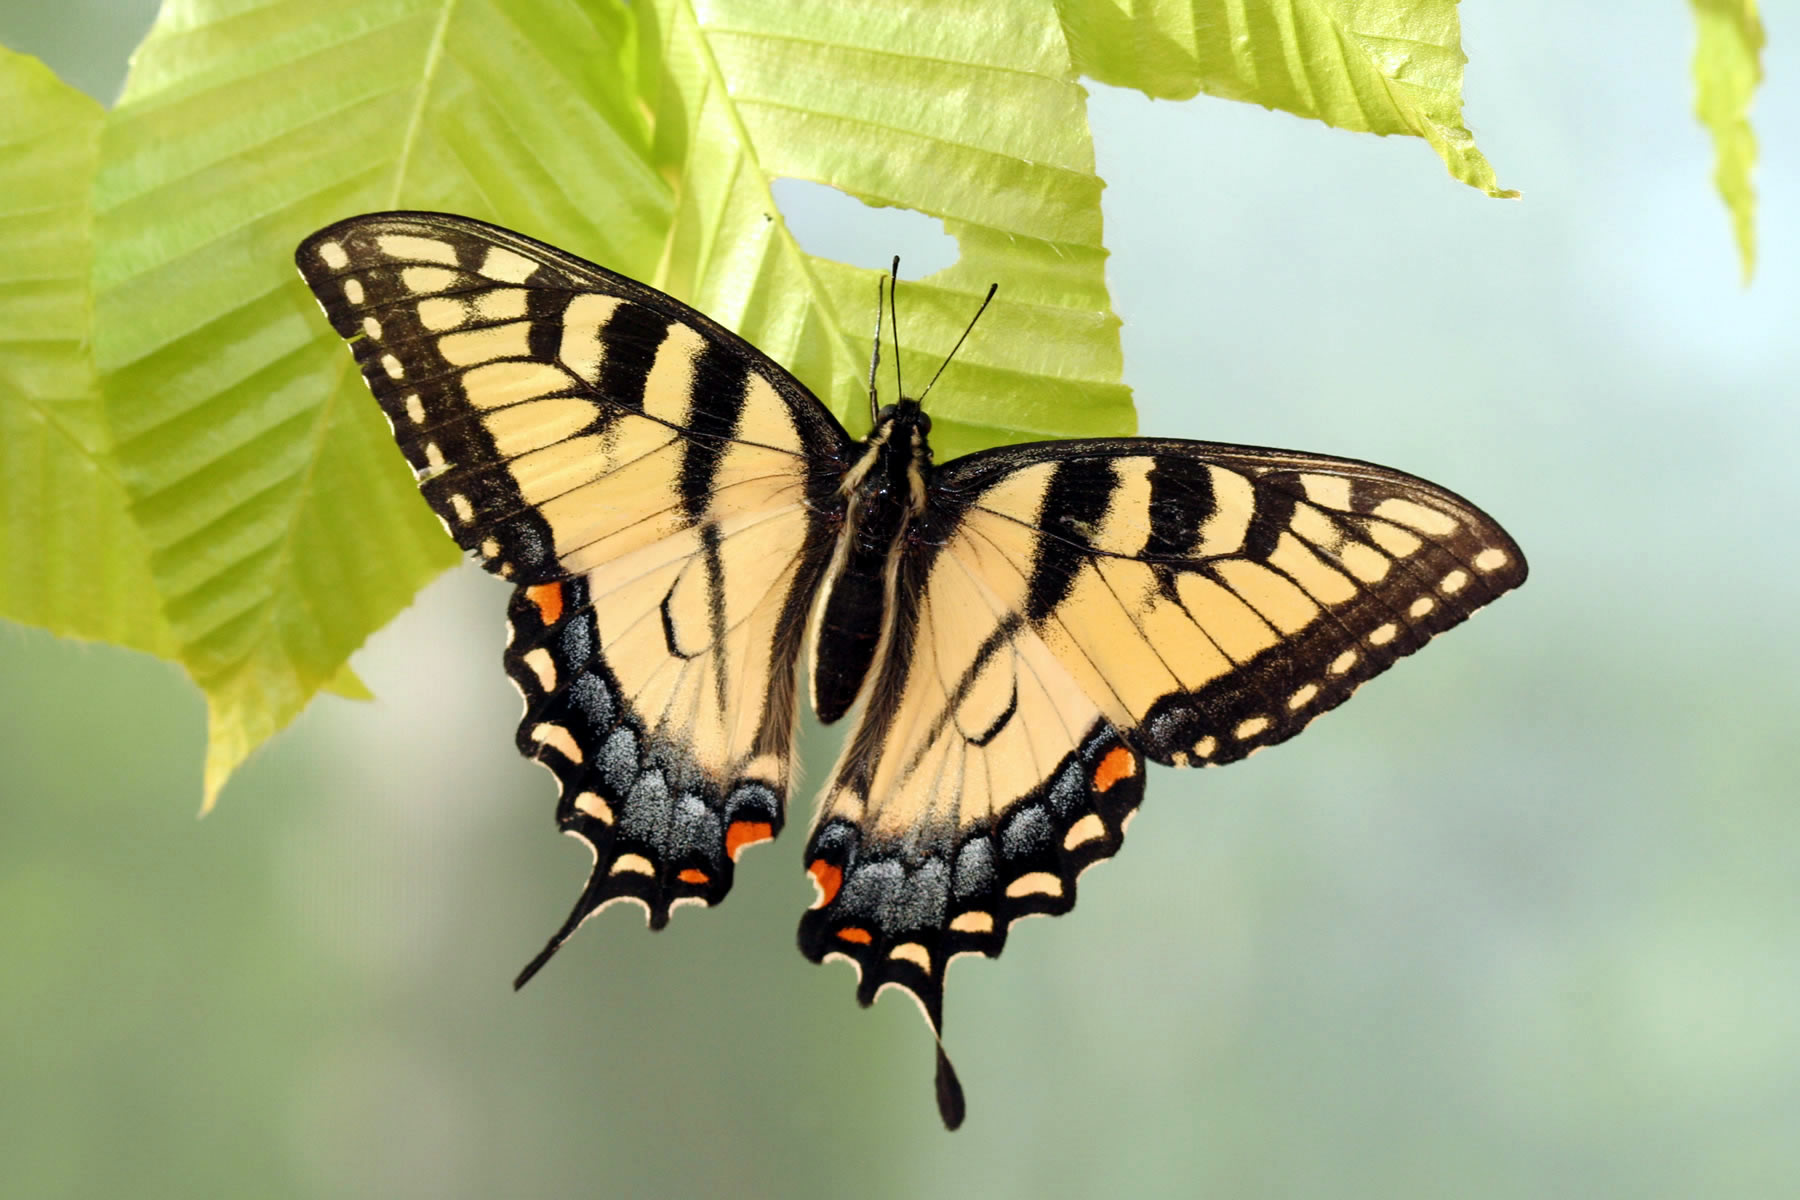 Appalachian tiger swallowtail butterfly is a hybrid of two